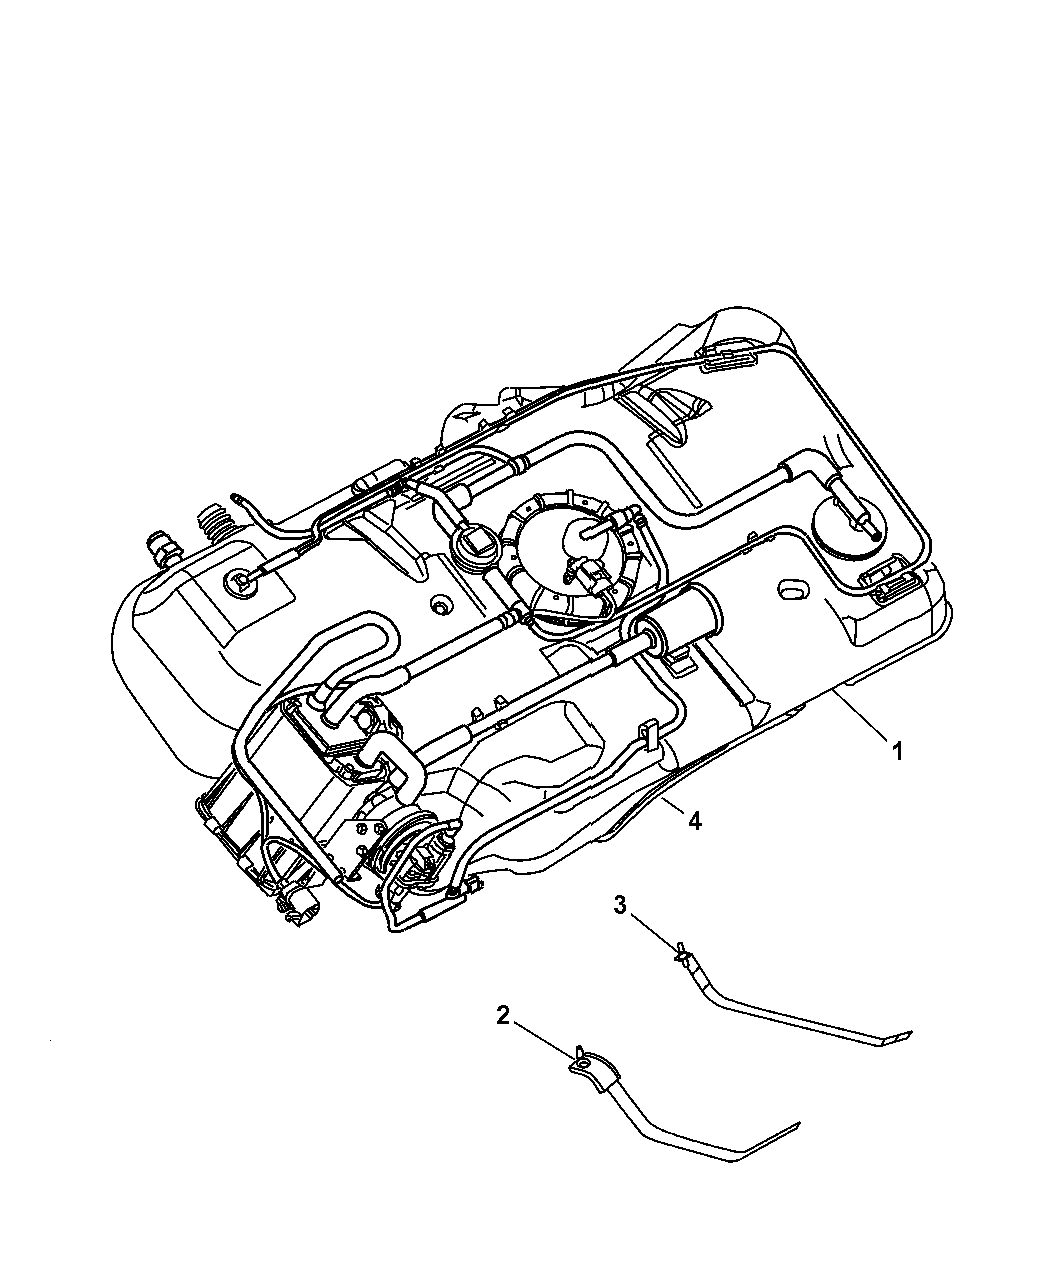 2003 pt cruiser door lock wiring diagram